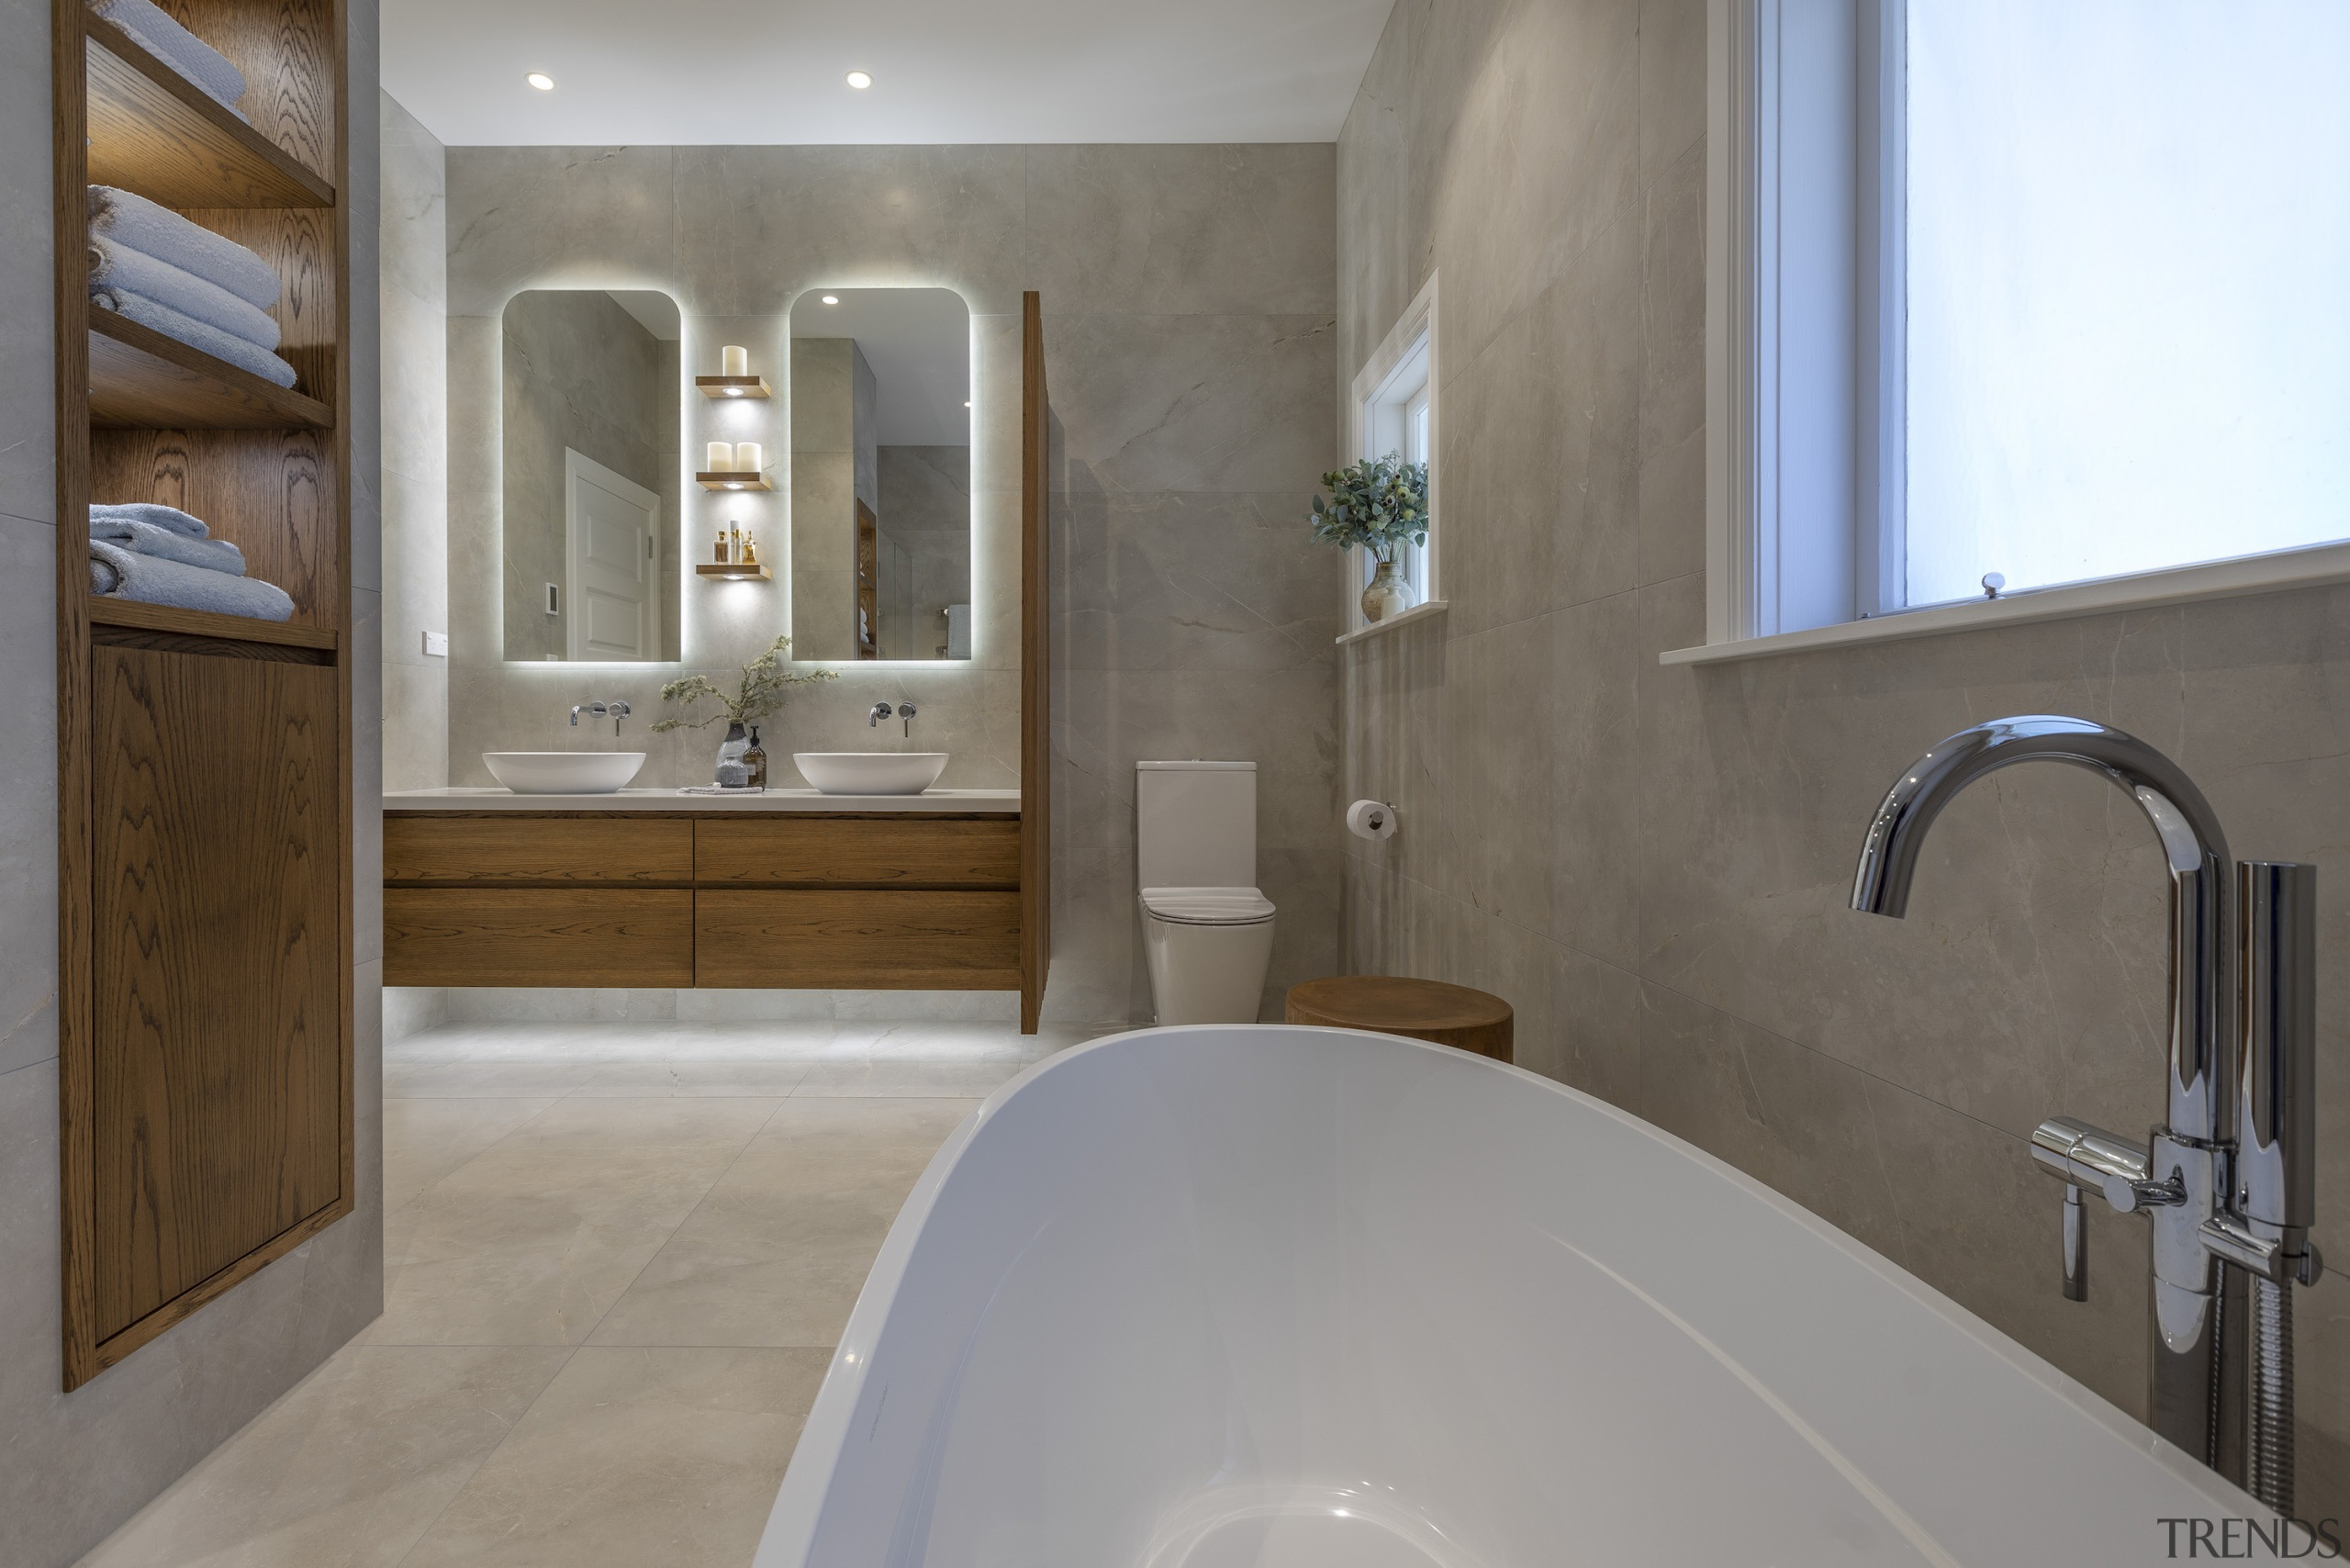 Kira Gray, Fyfe Kitchens – Highly Commended – architecture, bathroom, bathtub, building, estate, floor, flooring, furniture, home, house, interior design, marble, plumbing fixture, property, real estate, room, sink, tap, tile, wall, gray